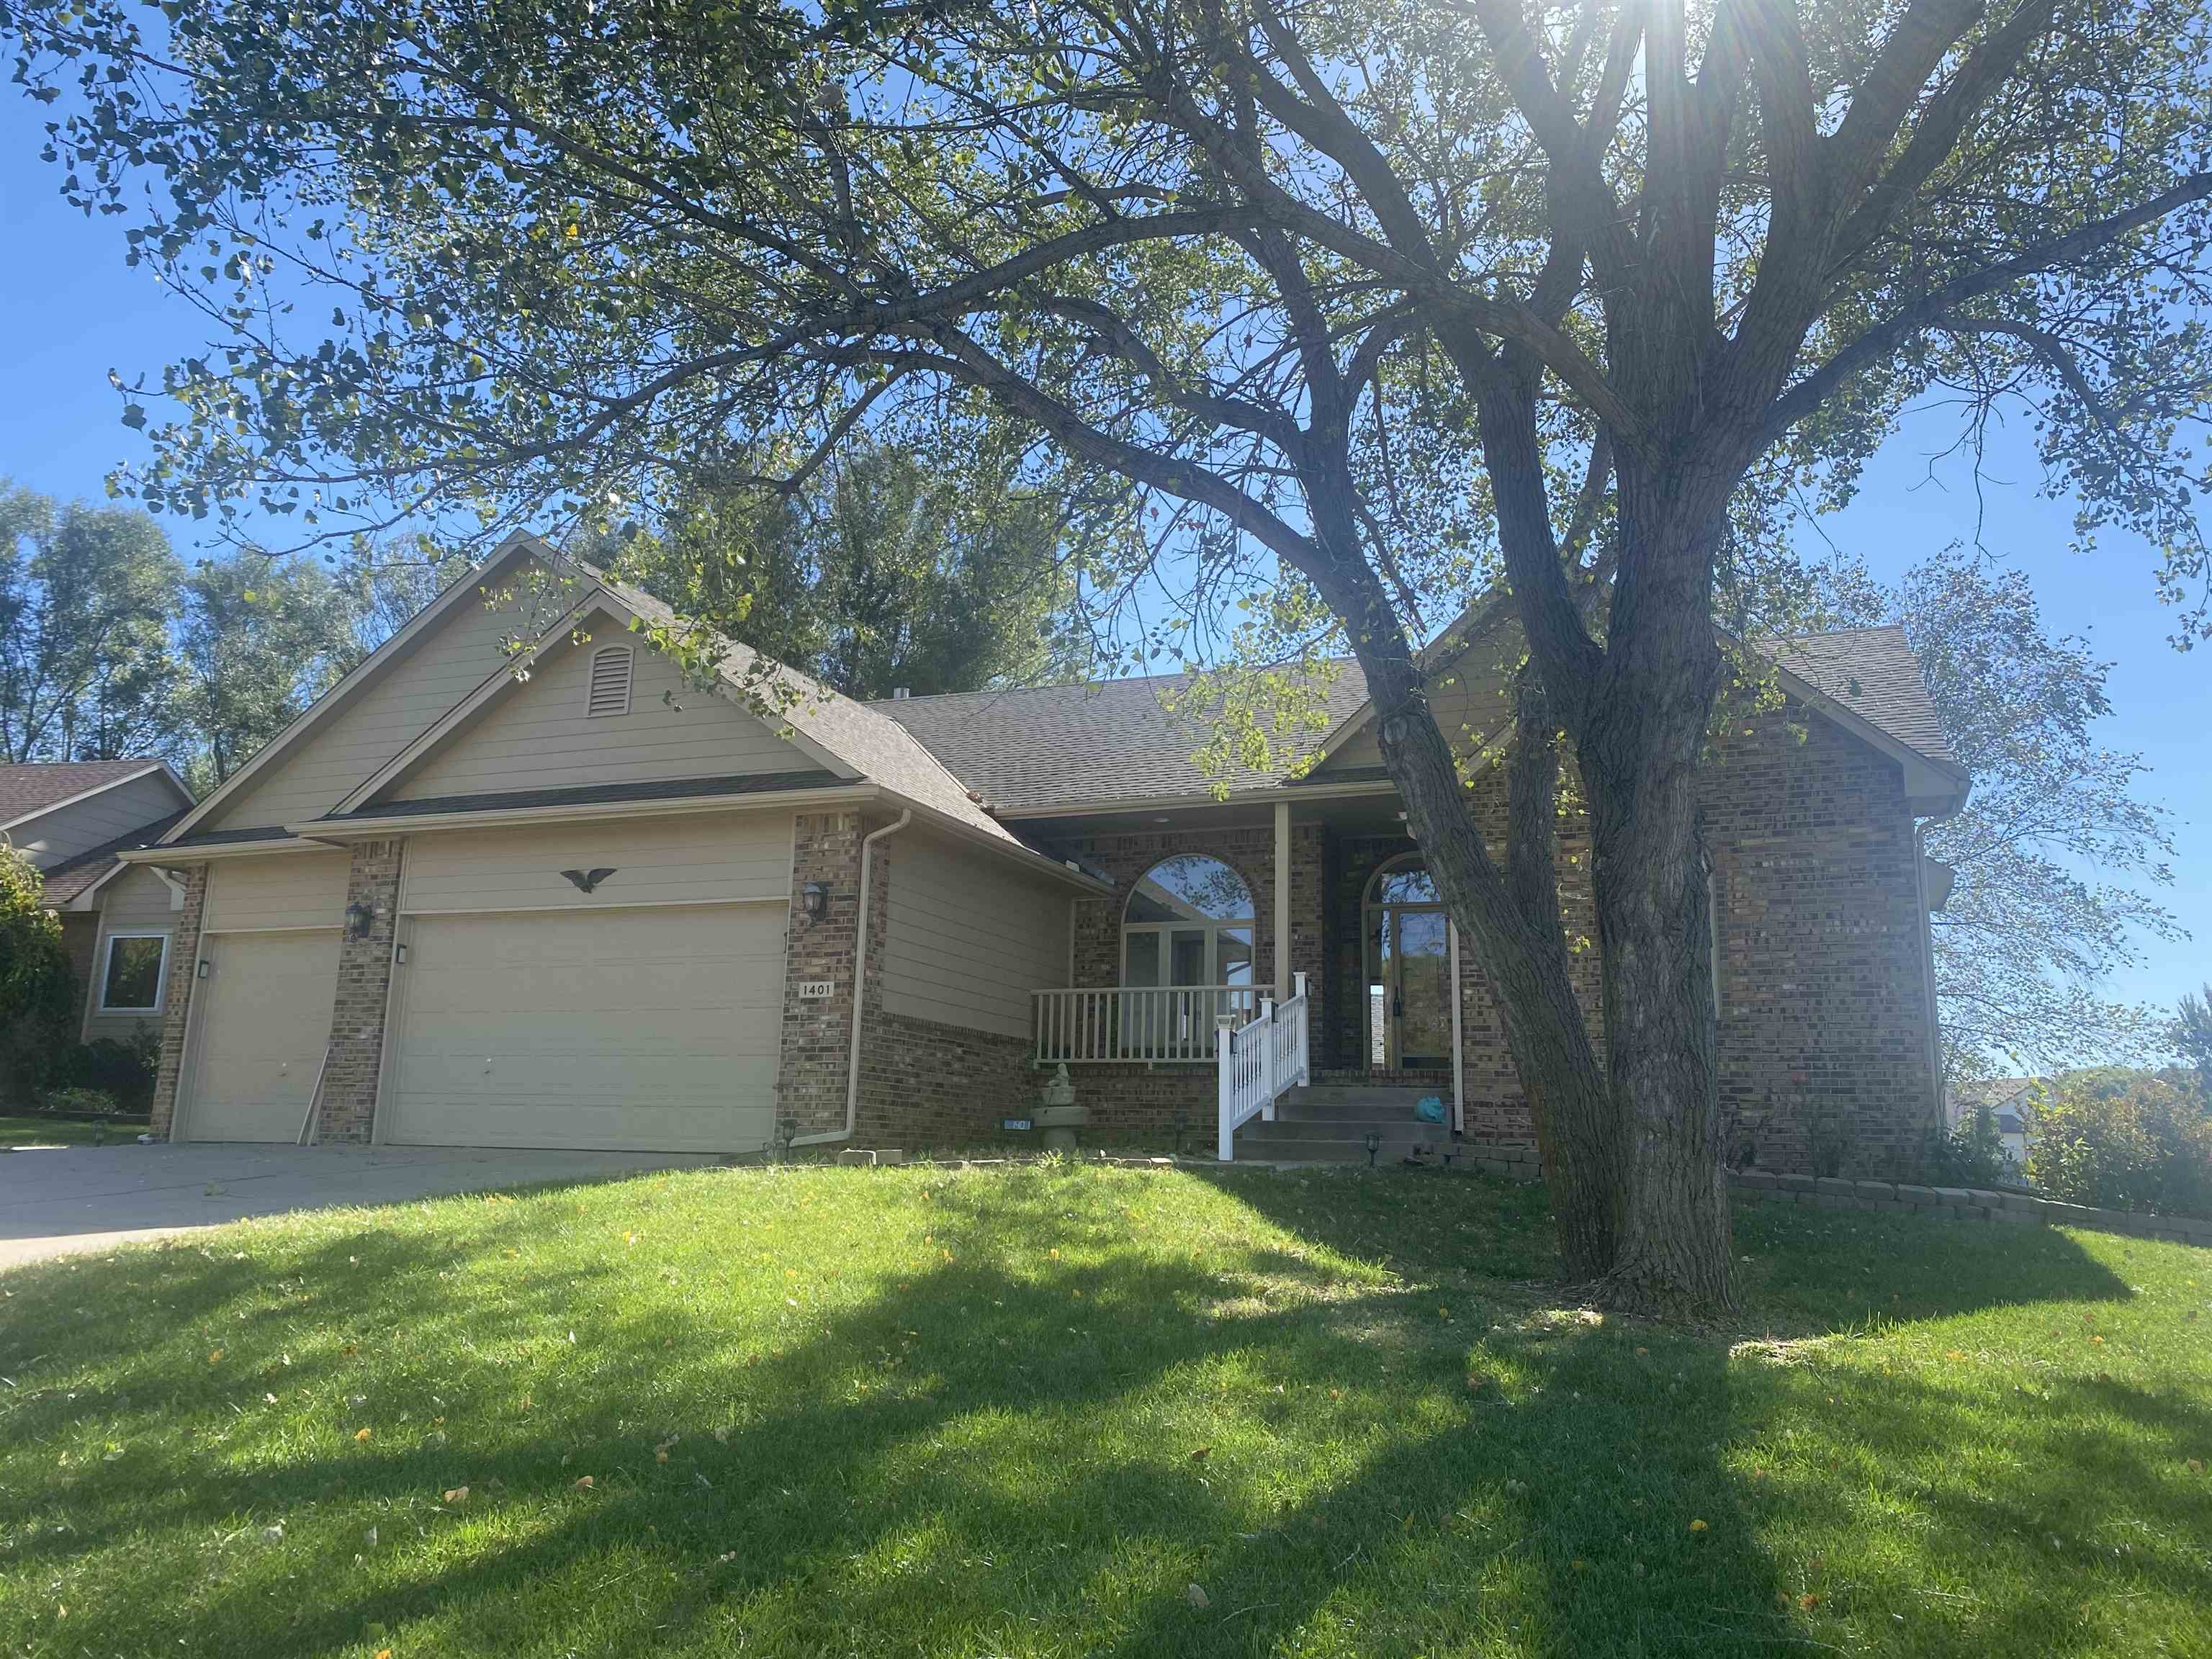 Ranch home with 5 bedroom, 3 bathroom with 3+ car garage home located in ever so desirable Derby and